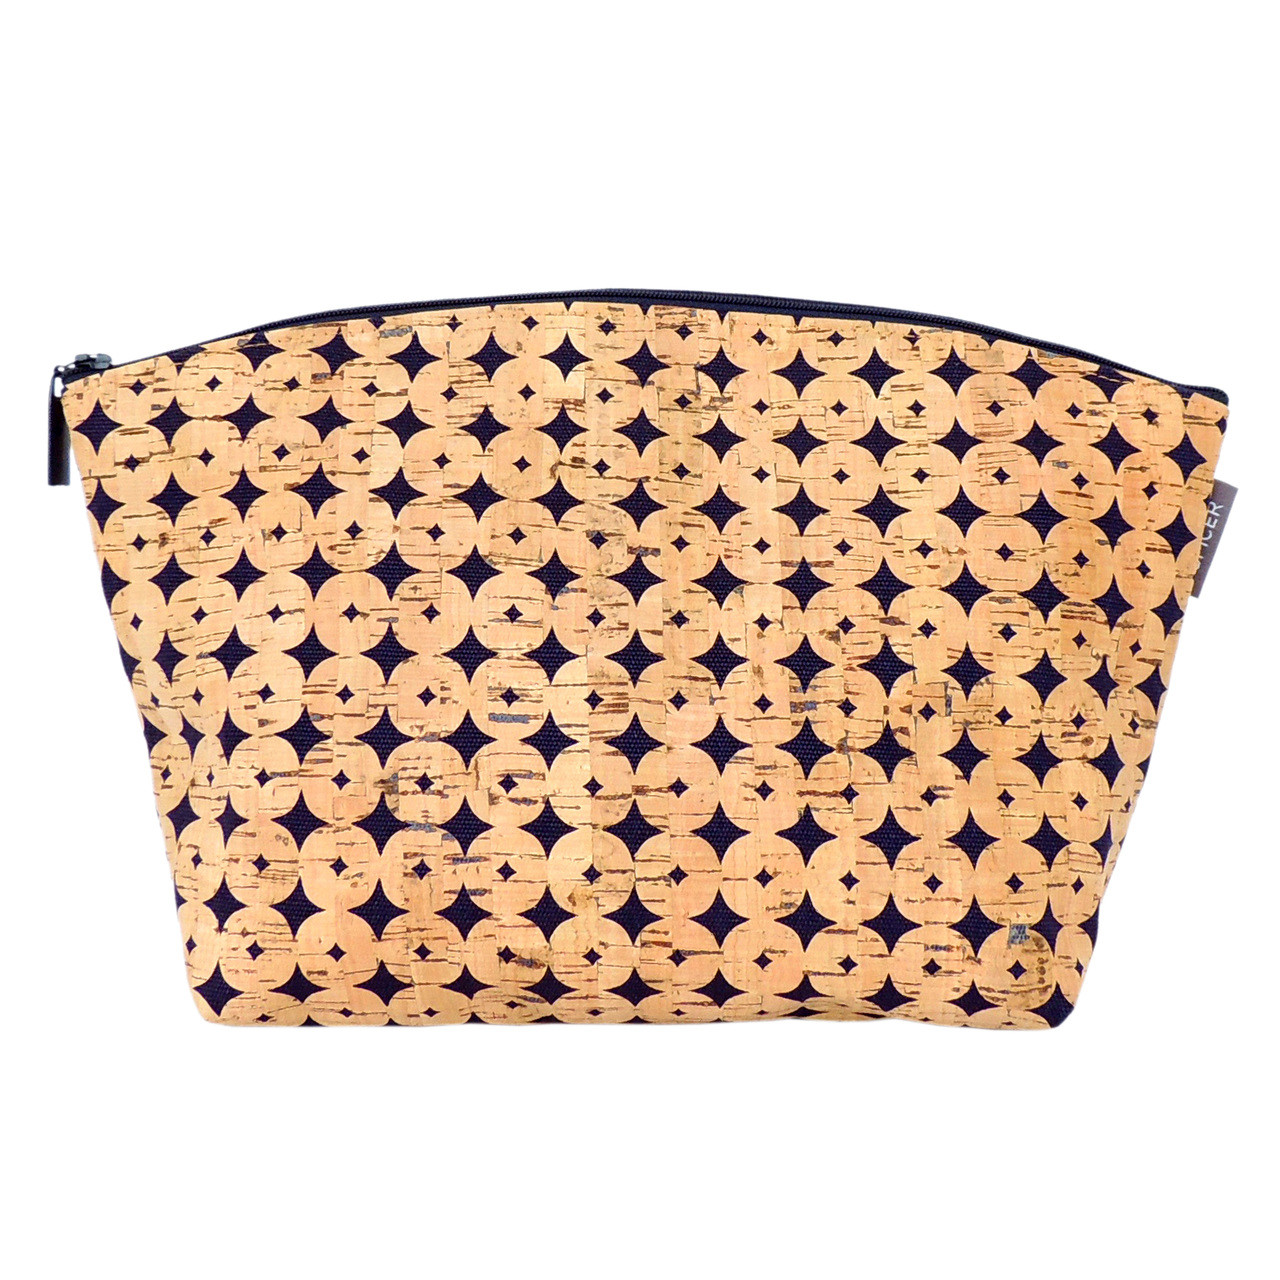 Extra Large Standing Pouch in Navy Cork Dots